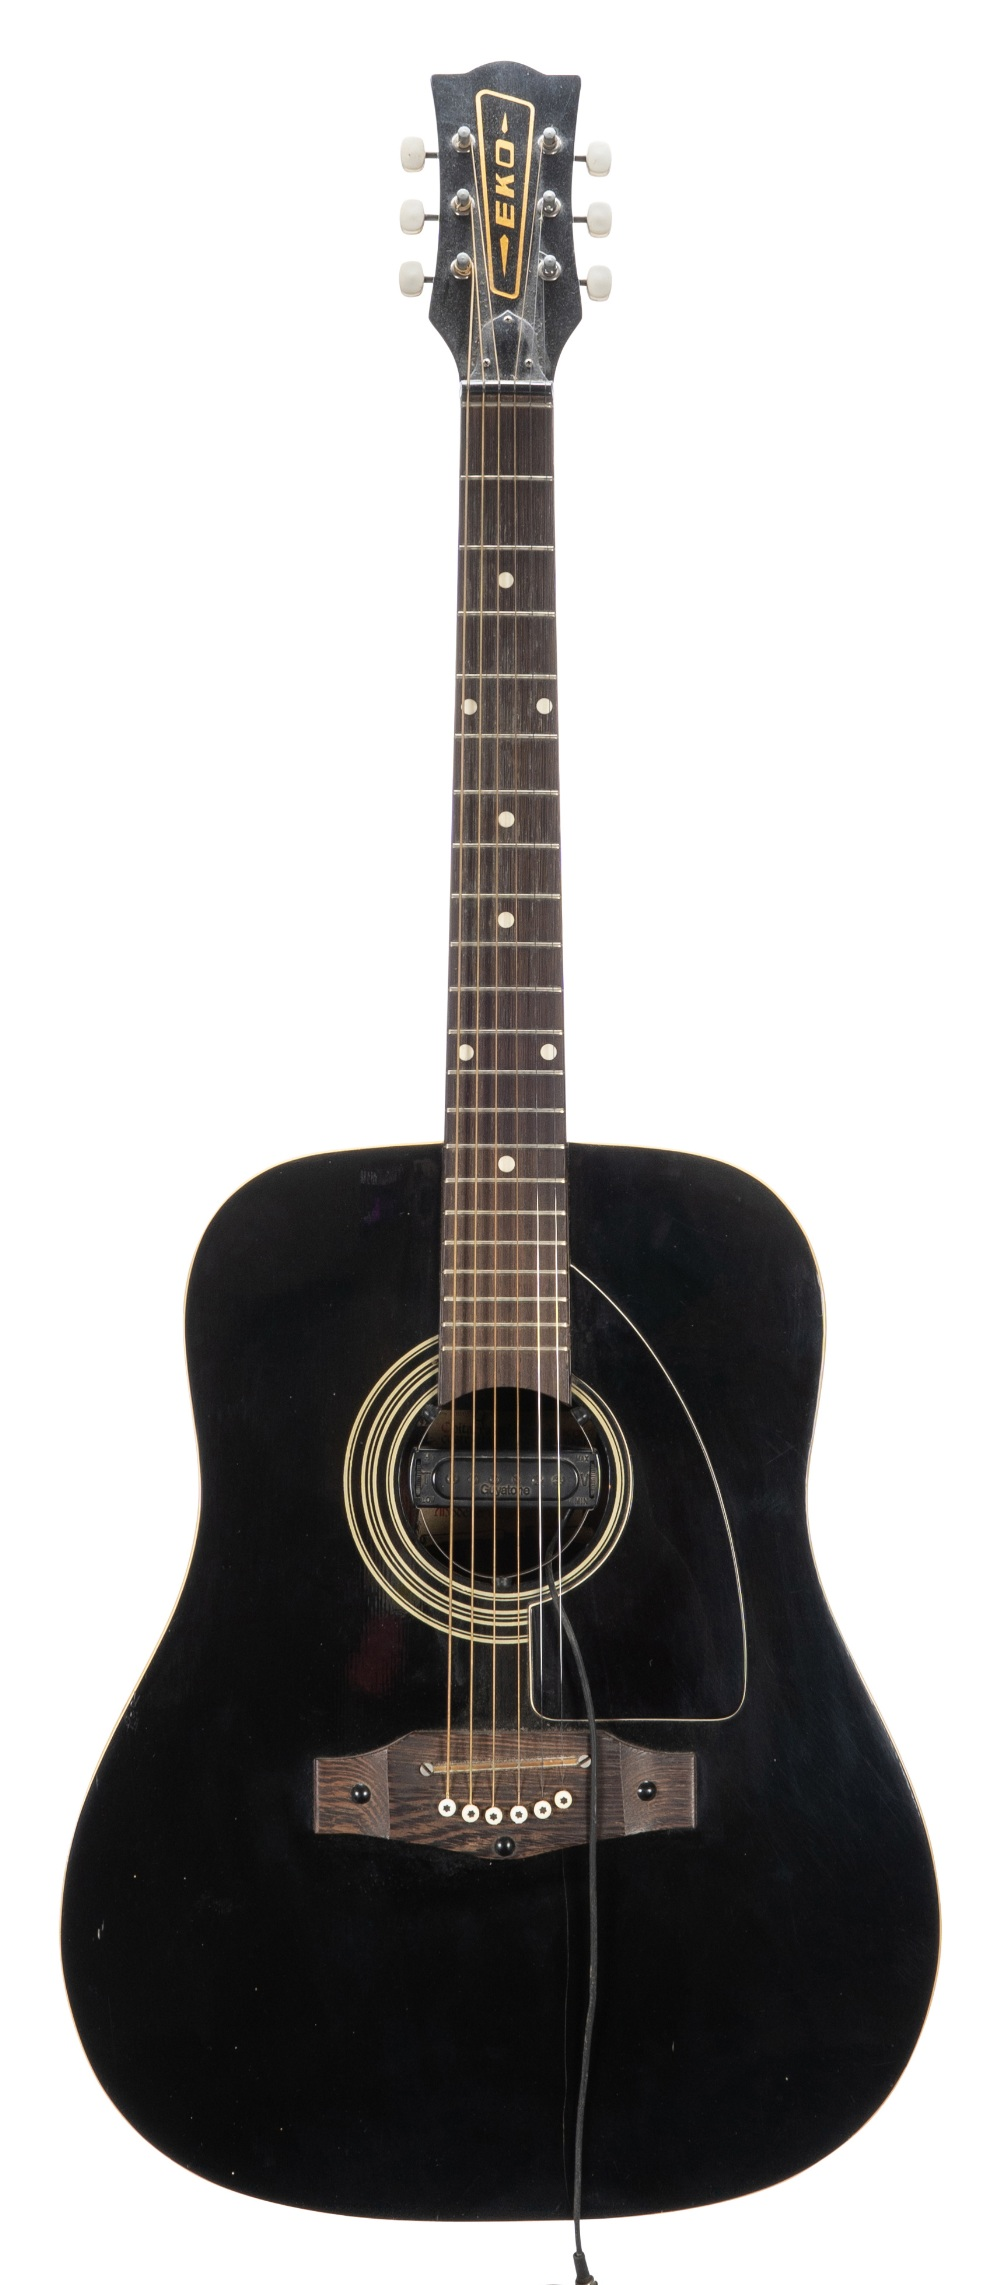 Lot 29 - 1970s Eko Rio Grande acoustic guitar; Finish: black, heavy lacquer crack to top, other various